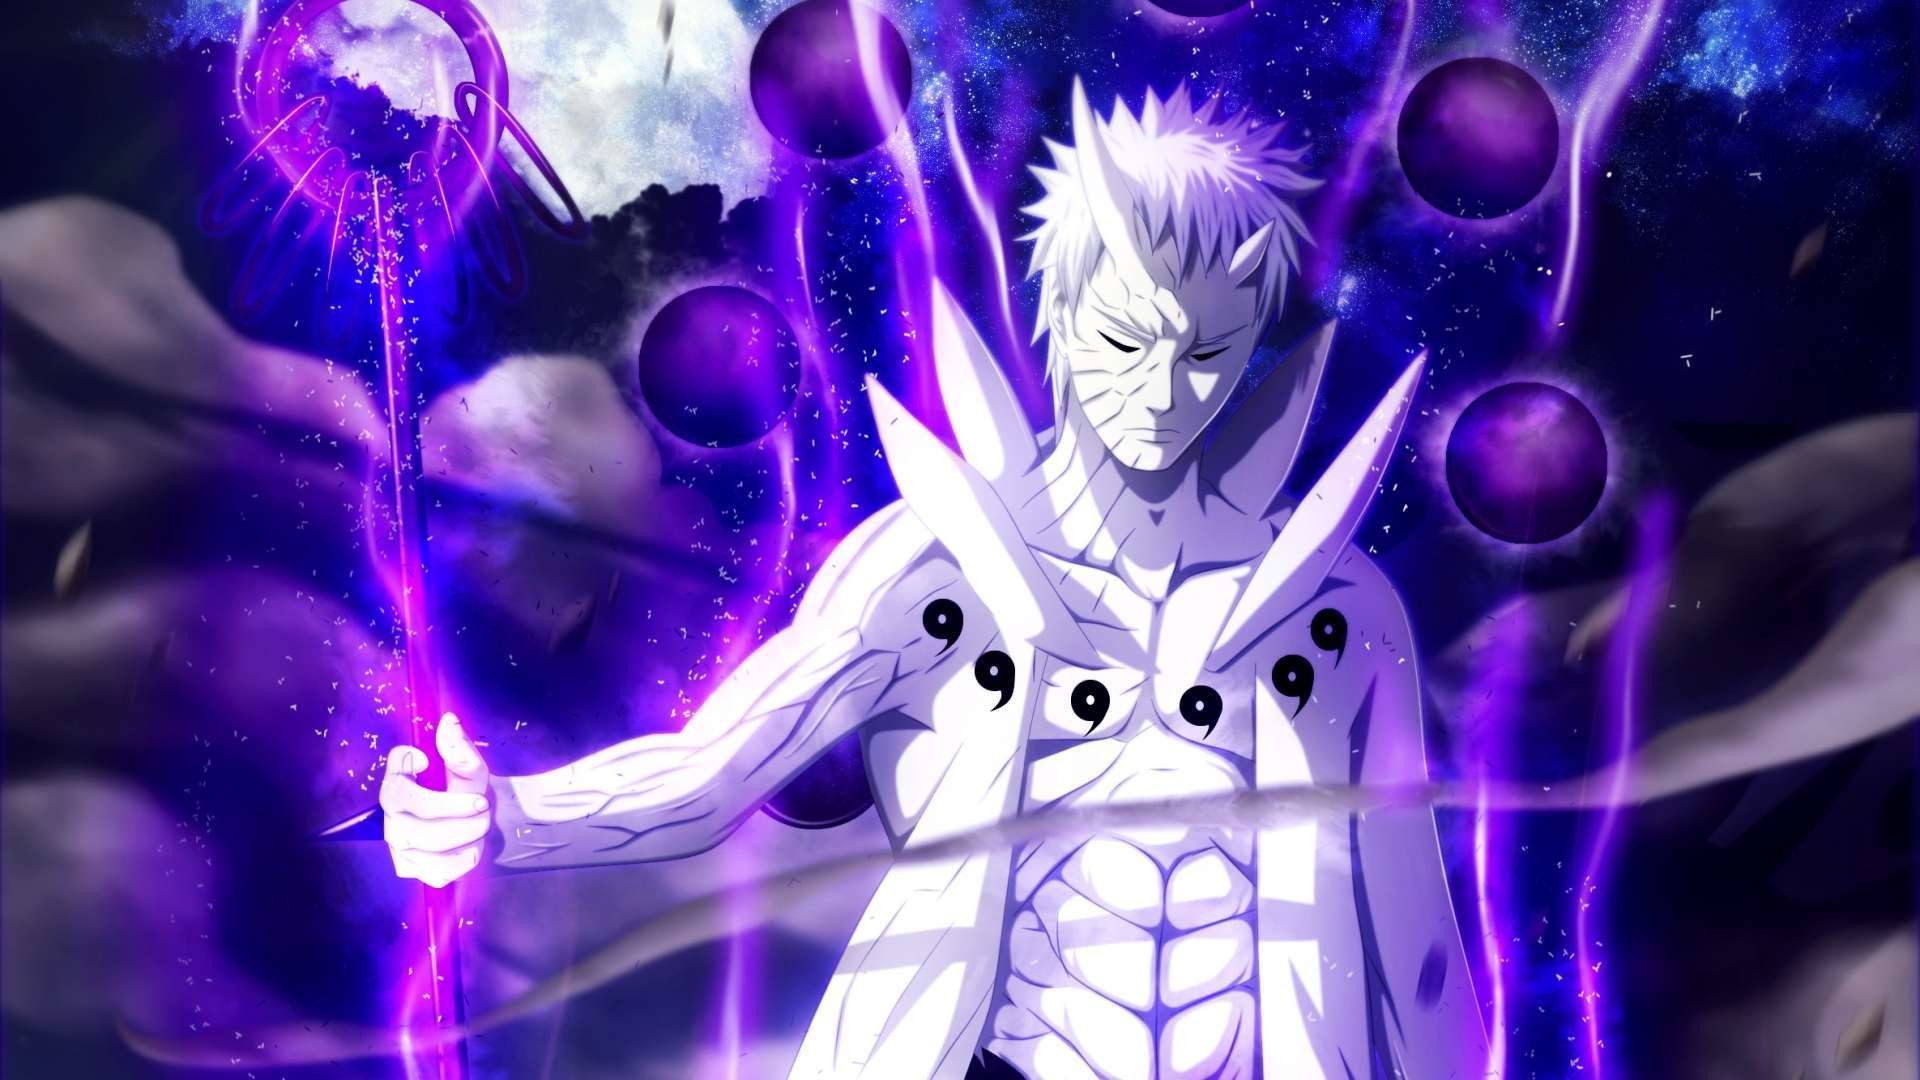 Download 470 Wallpaper Hd Anime Naruto  Paling Keren